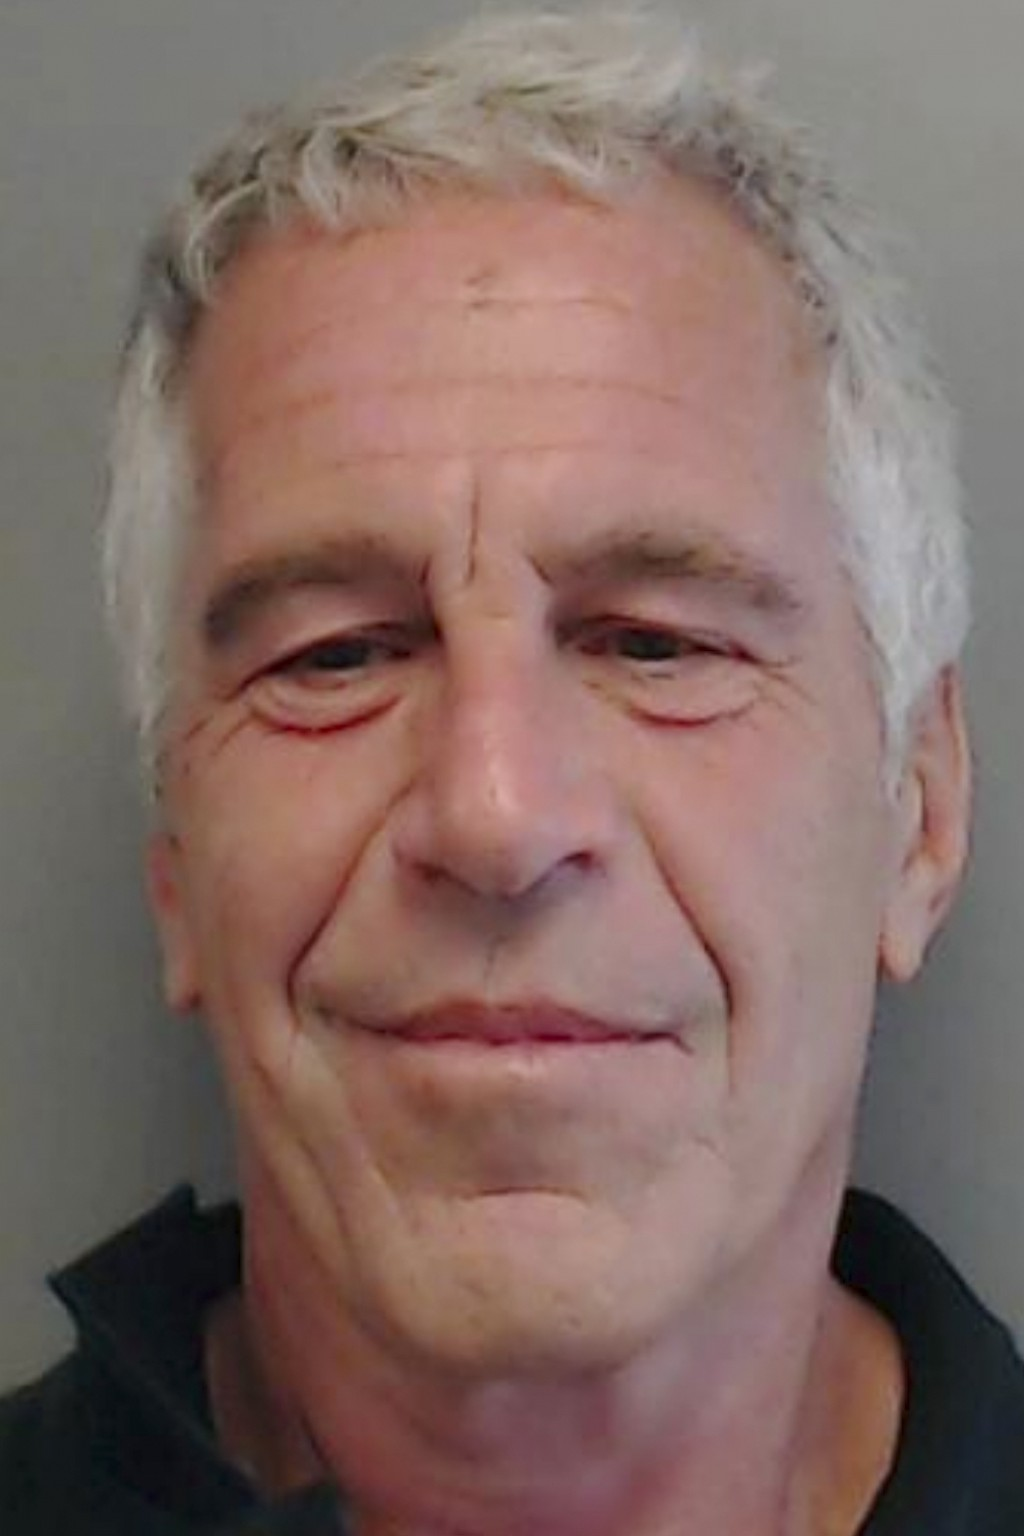 FILE - This July 25, 2013, file image provided by the Florida Department of Law Enforcement shows financier Jeffrey Epstein. Federal prosecutors, prep...